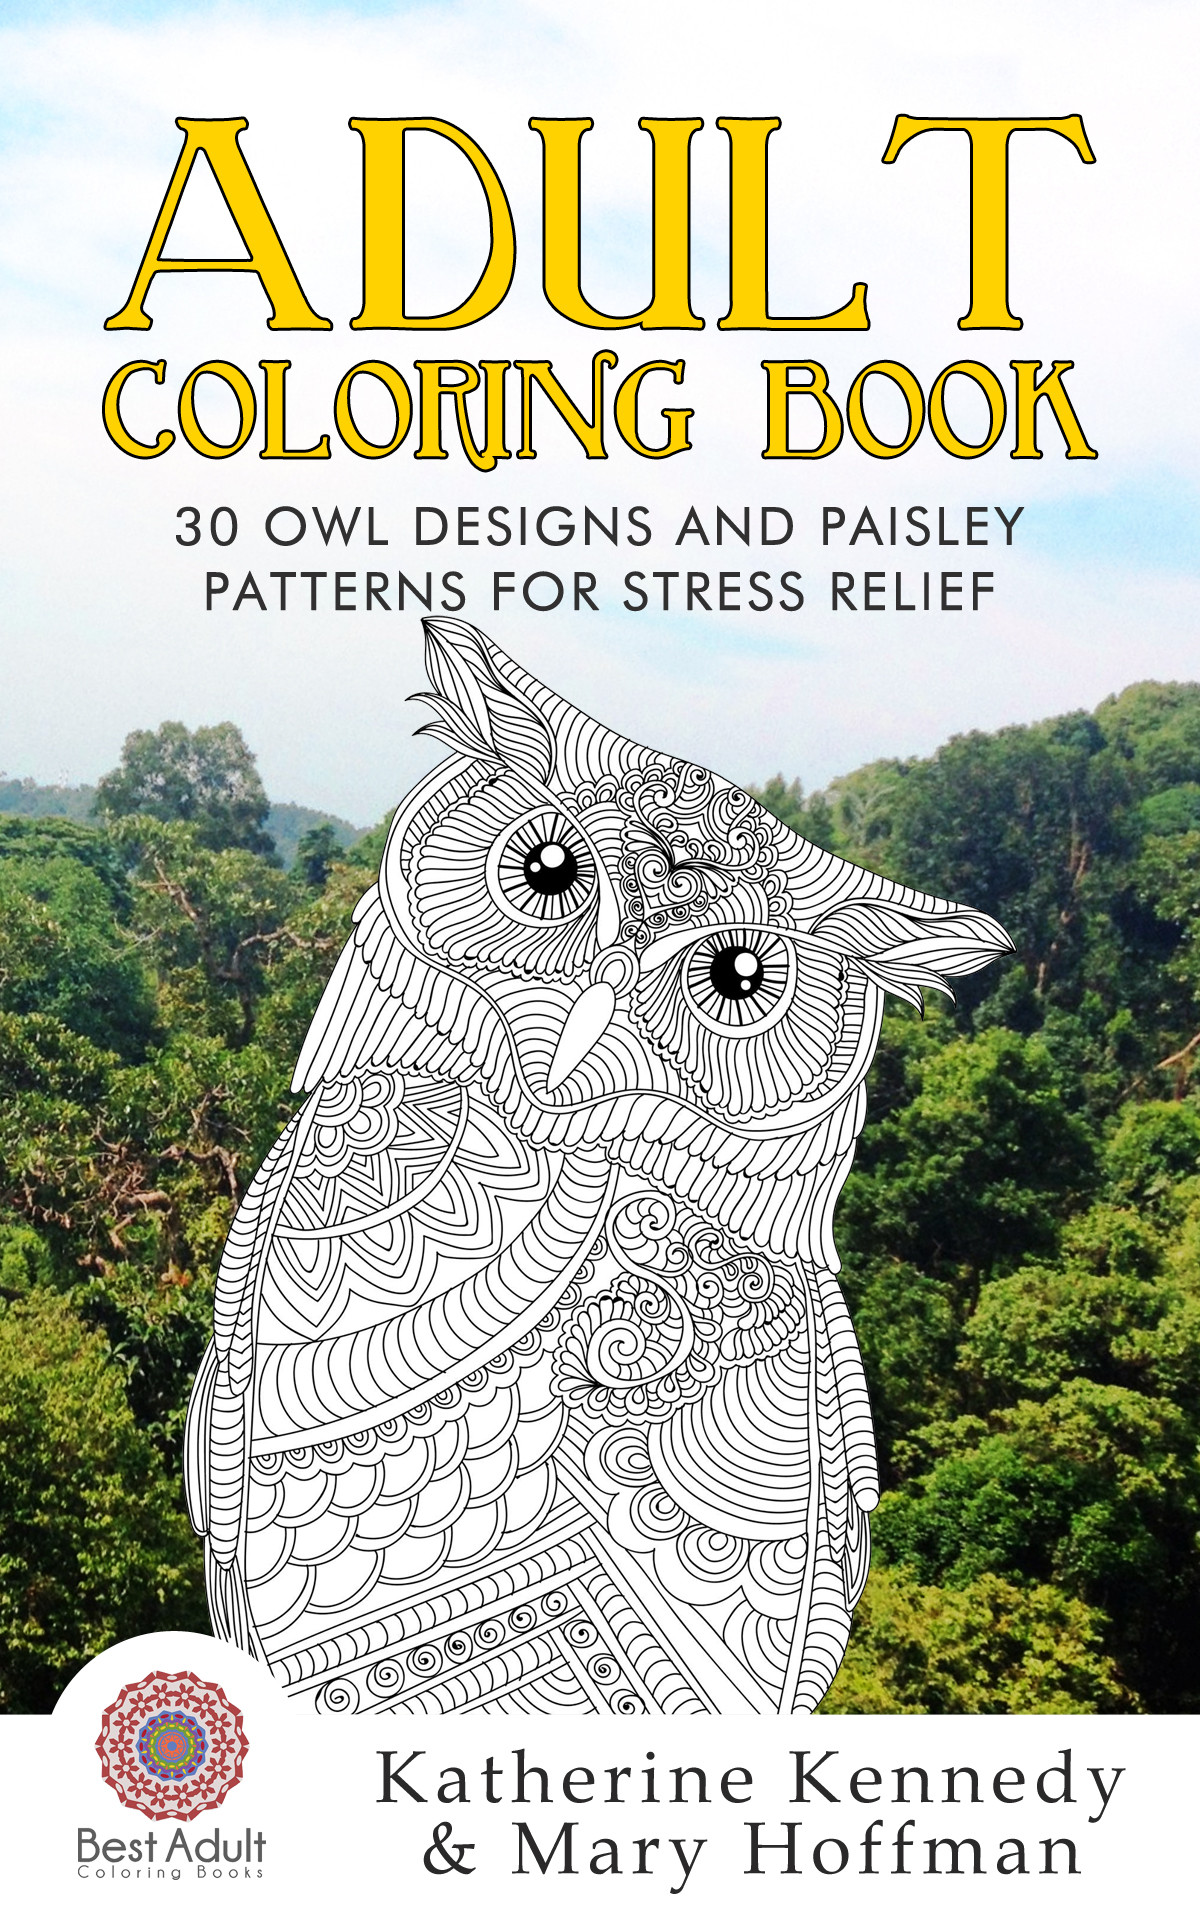 Best ideas about Adult Coloring Books Stress Relieving Patterns . Save or Pin Adult coloring book 30 owl designs and paisley patterns Now.